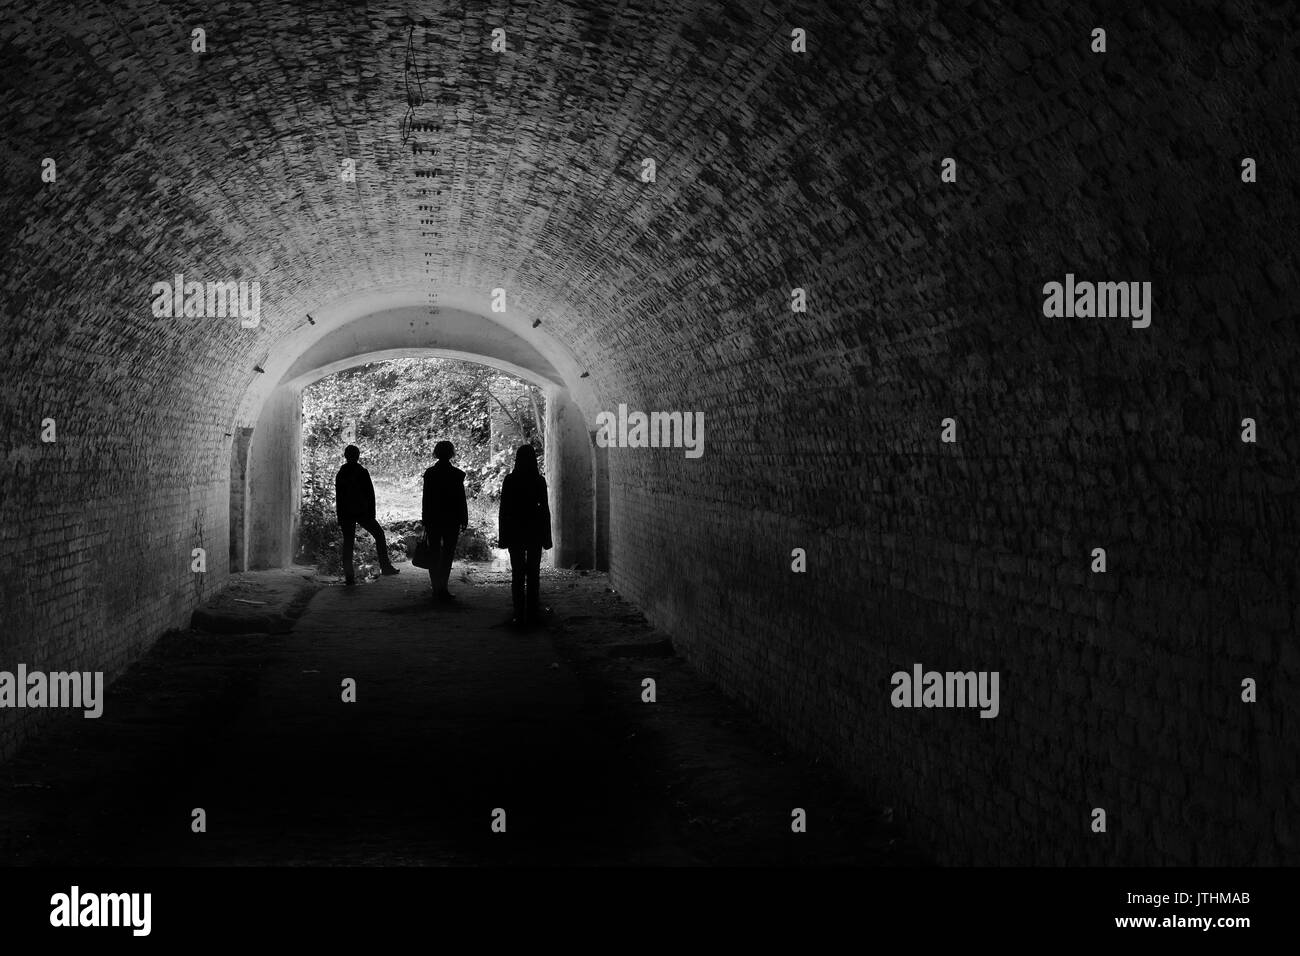 Three persons found exit from catacombs - Stock Image